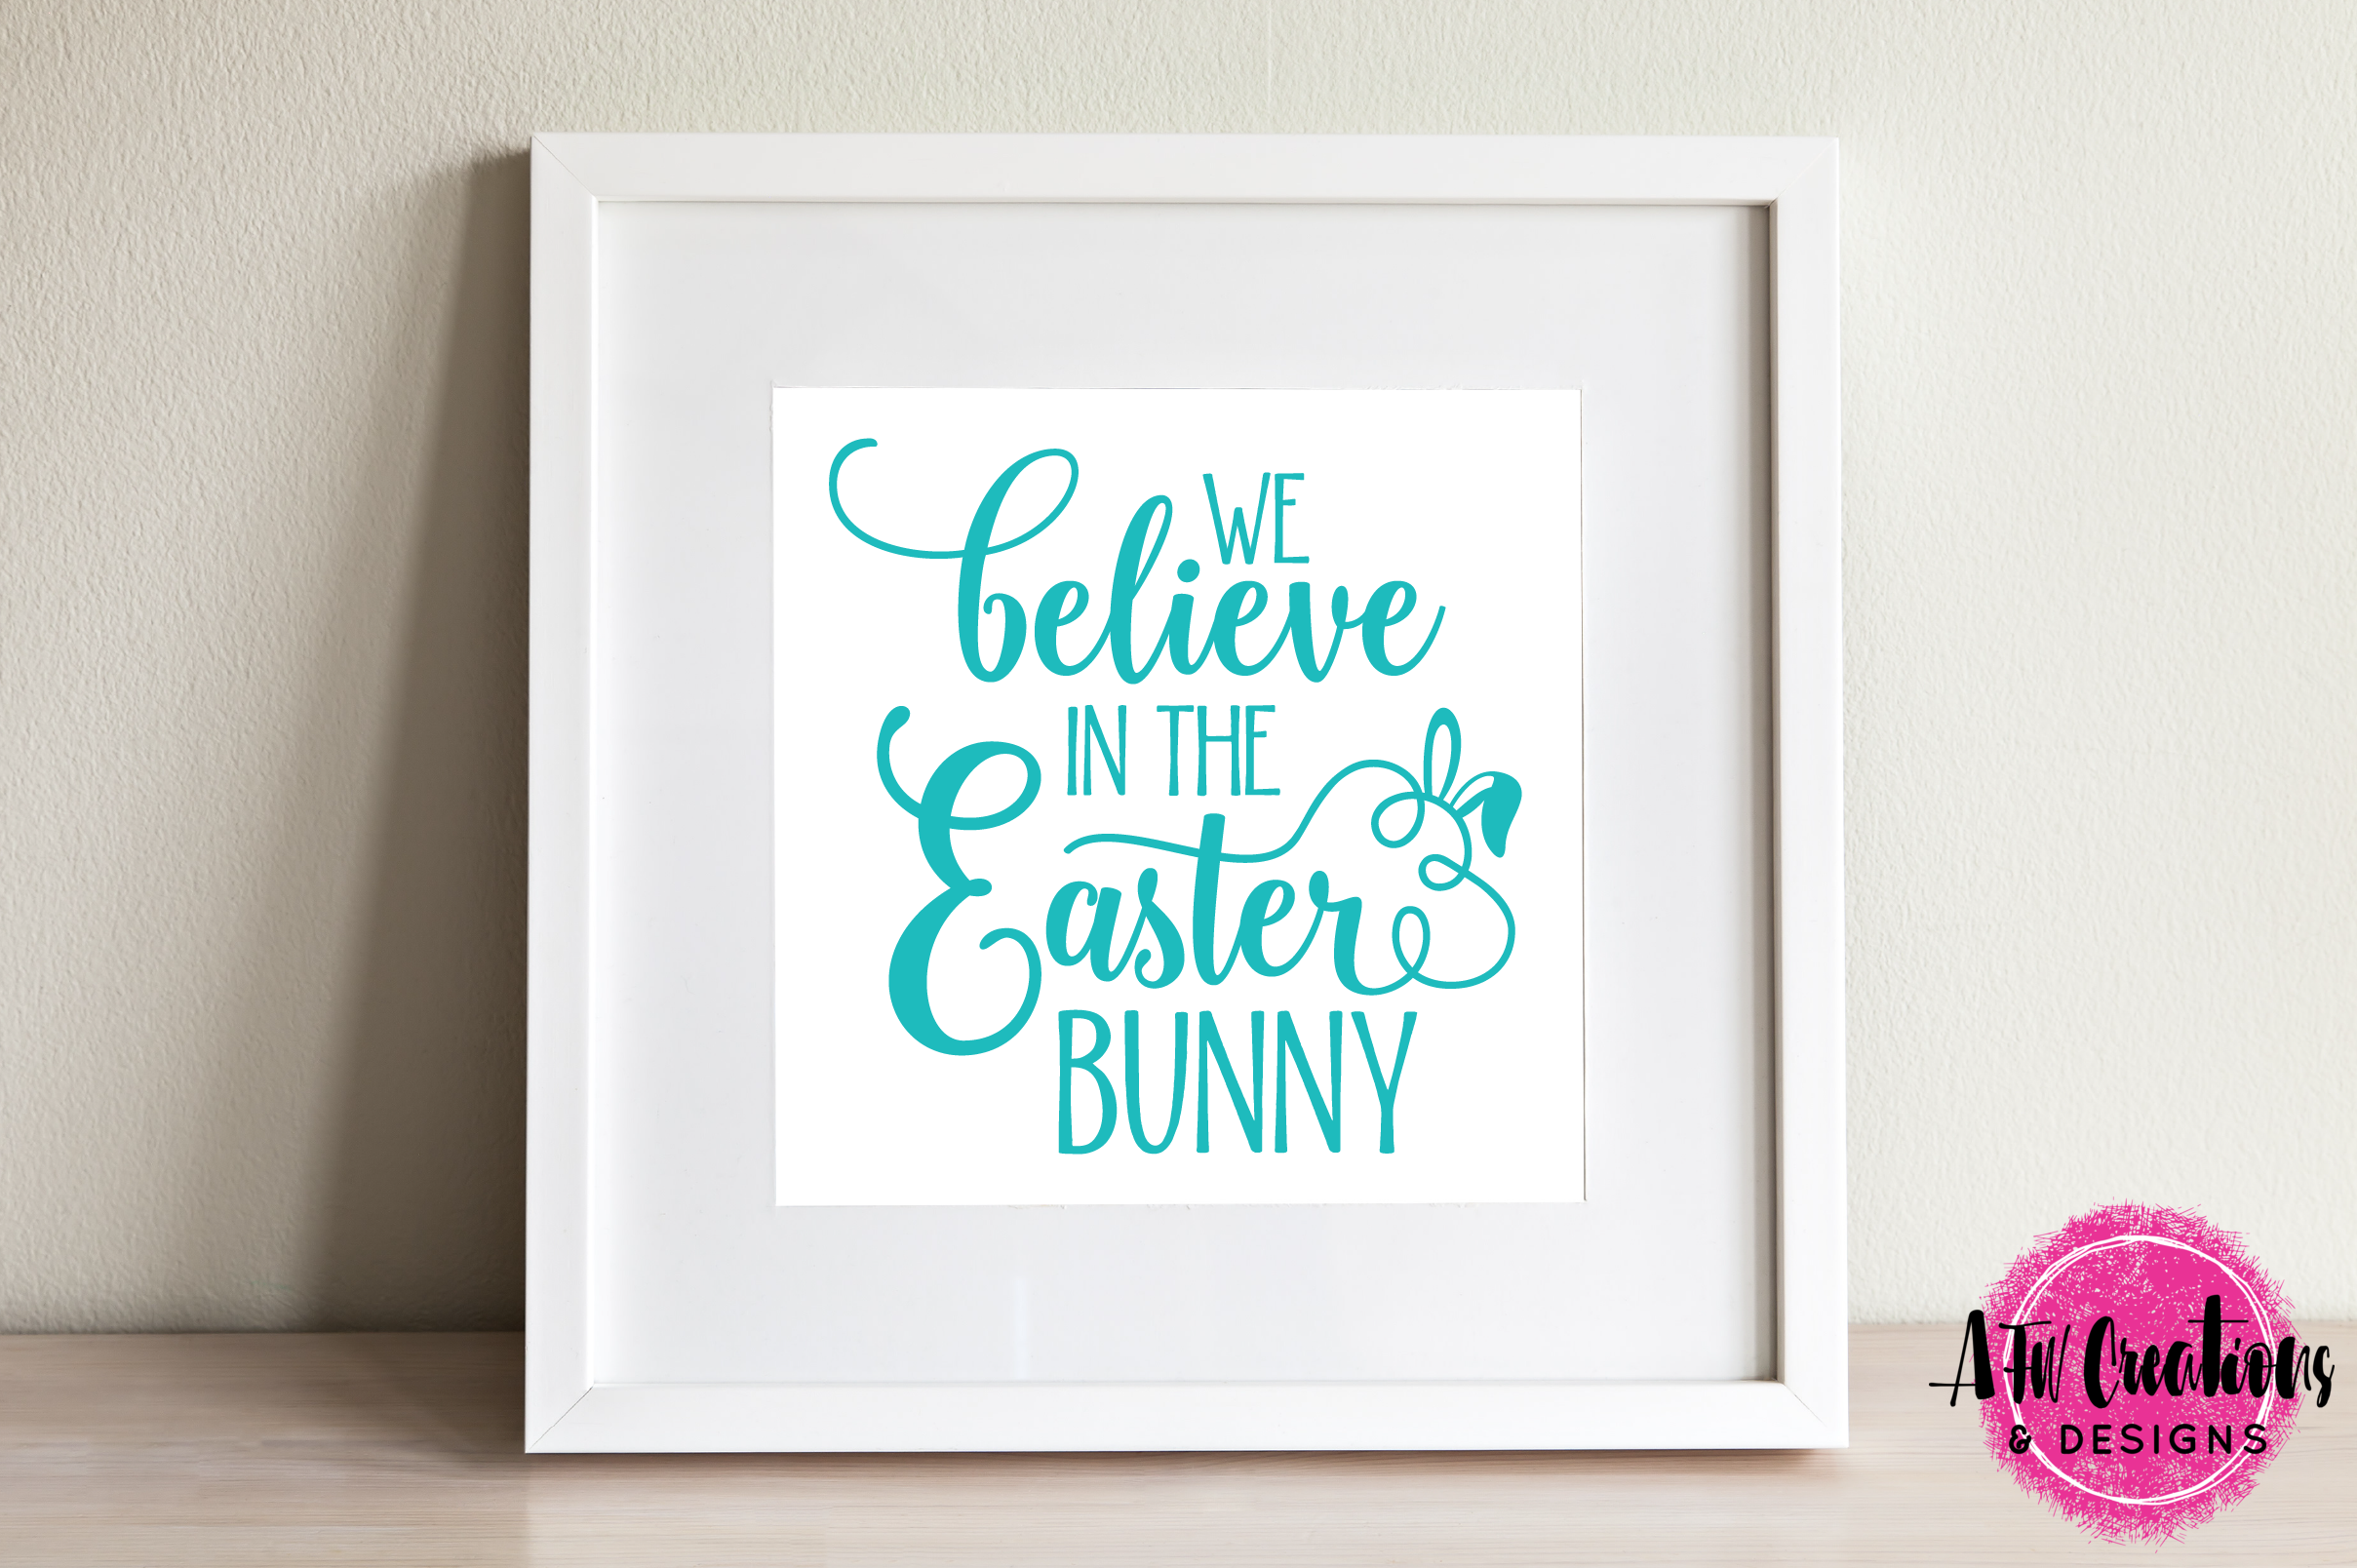 We Believe in the Easter Bunny - SVG, DXF, EPS Cut Files example image 2